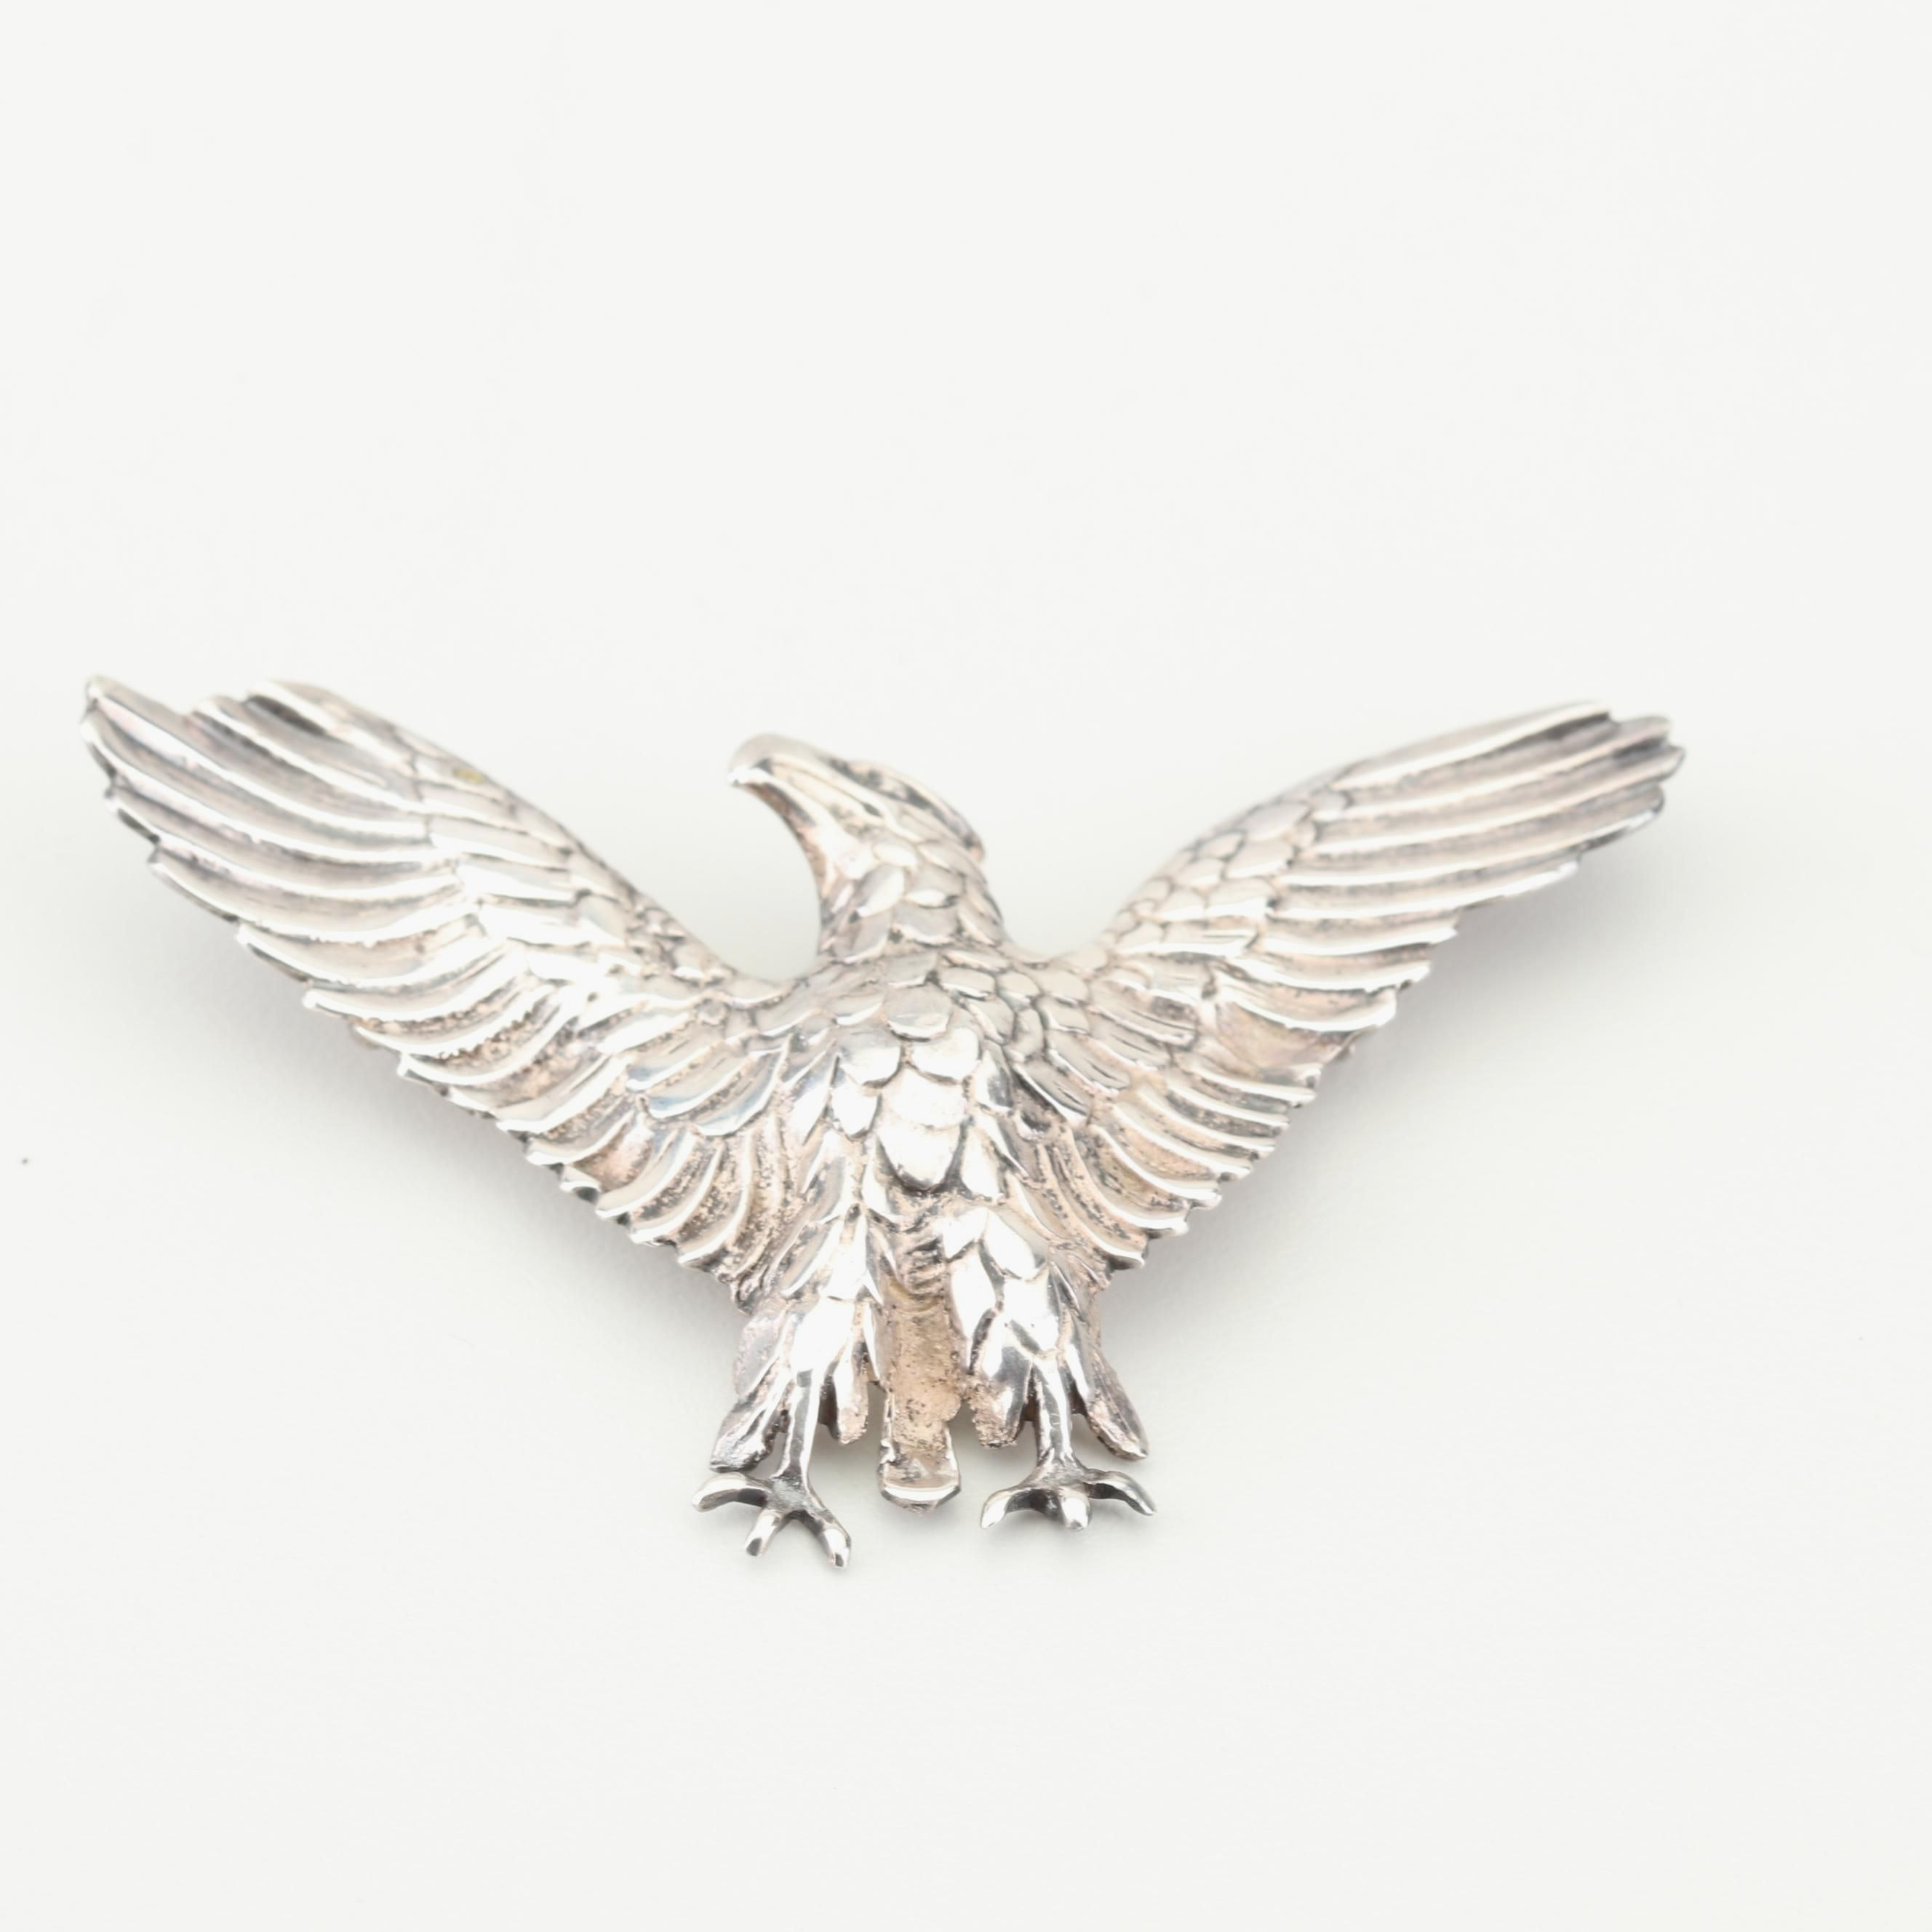 Bauring Sterling Silver Eagle Brooch